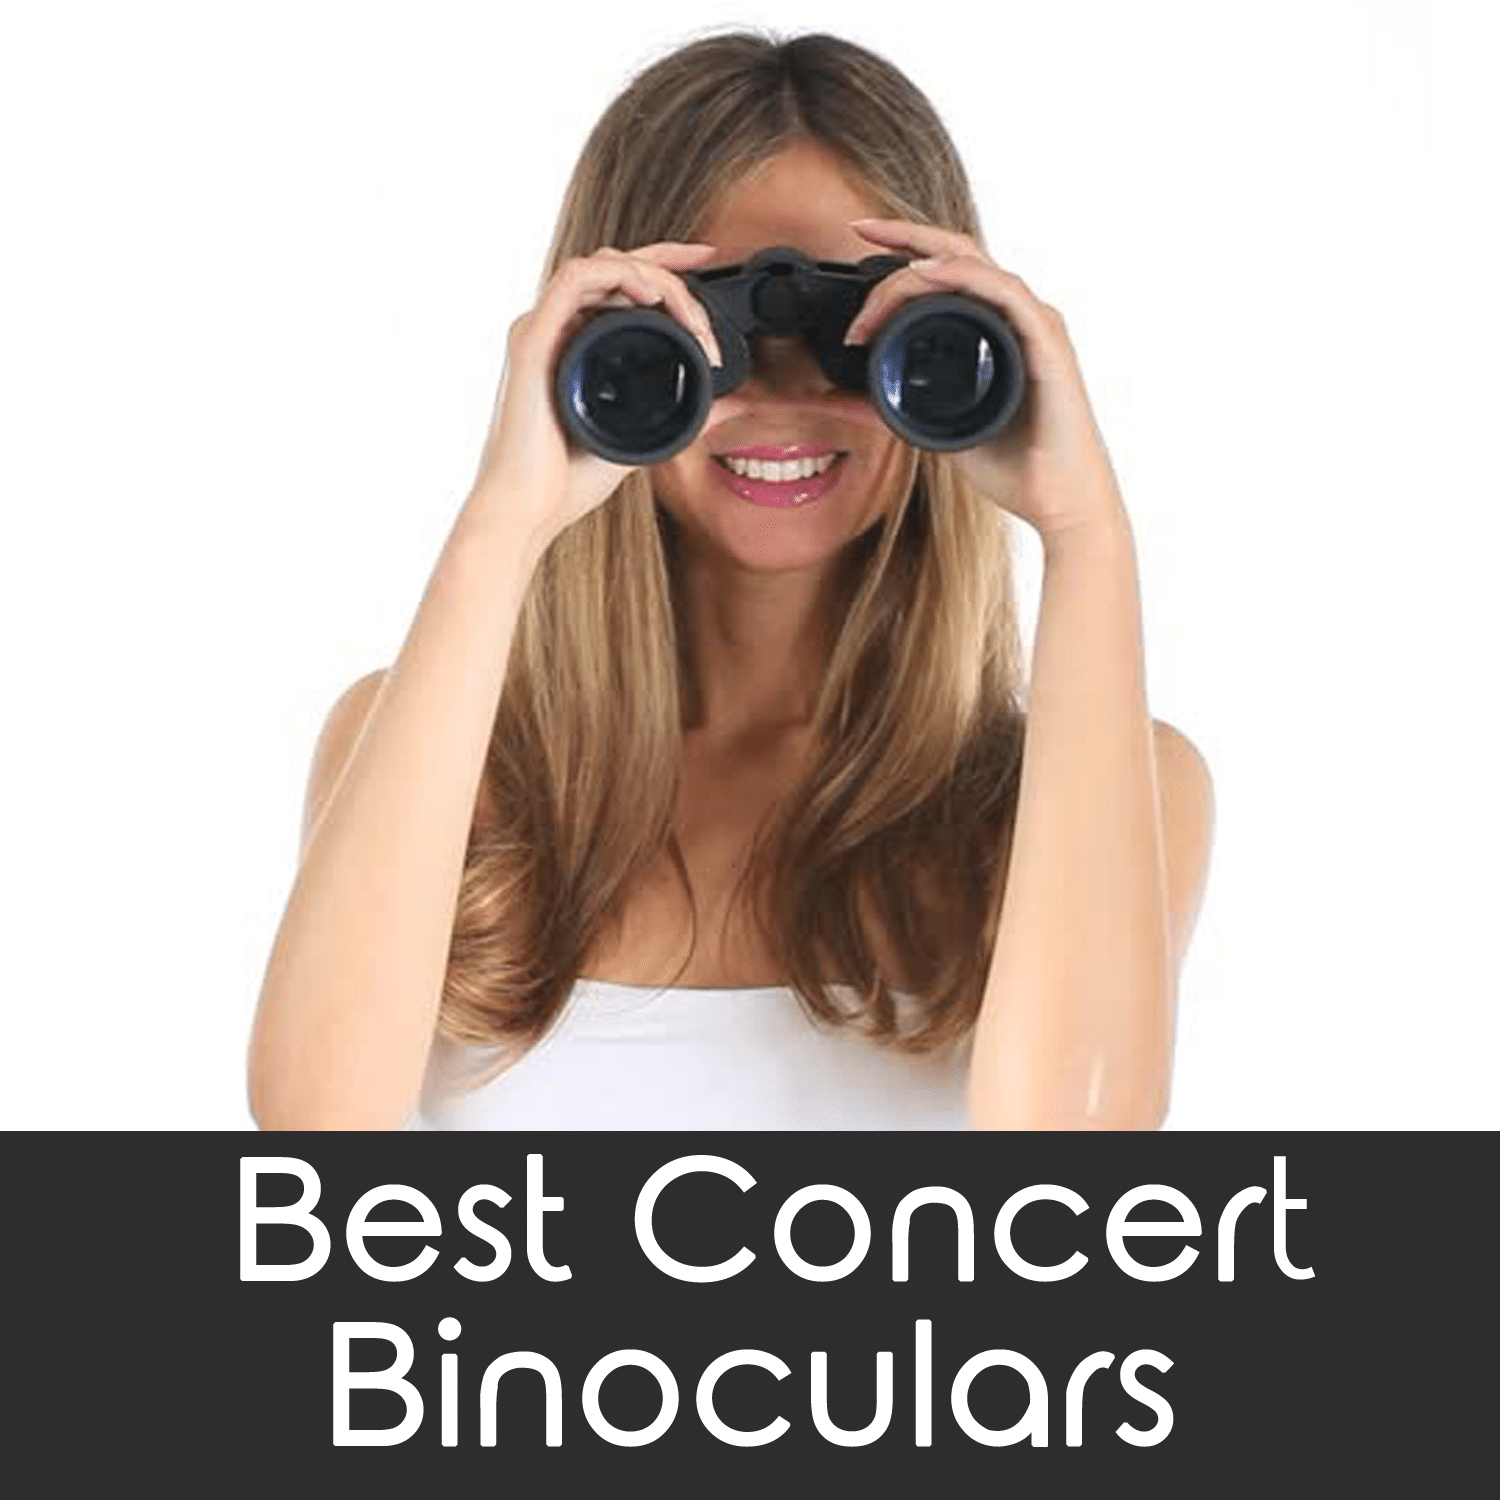 best binoculars for sports and events- best binoculars for concerts